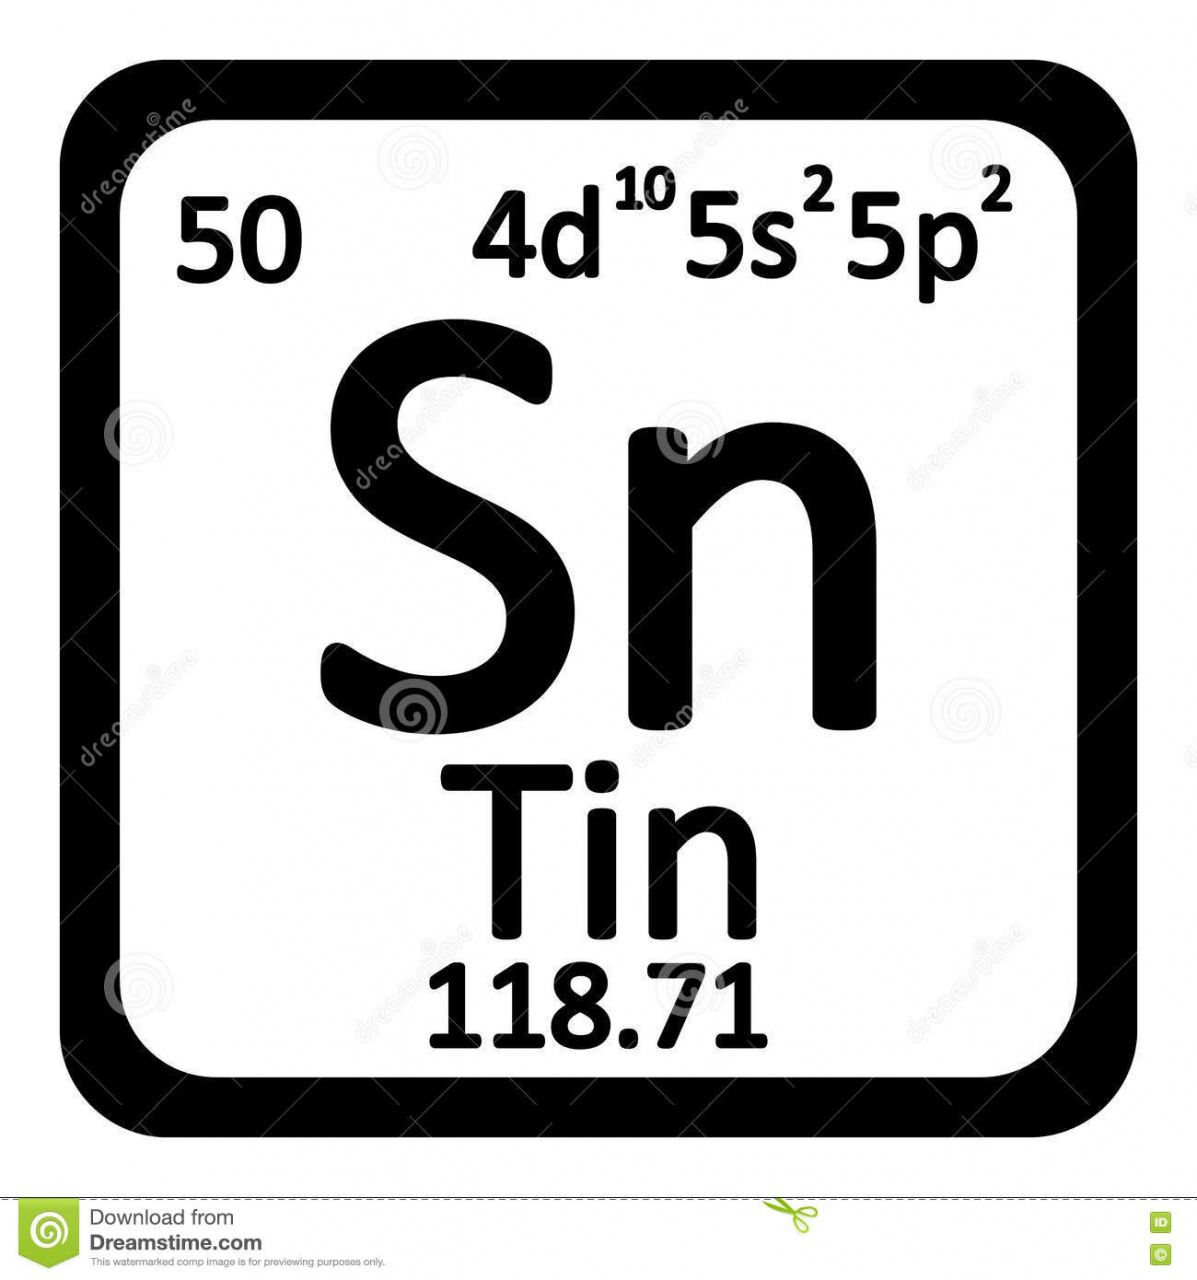 Best 25 tin periodic table ideas on pinterest aptamil range best 25 tin periodic table ideas on pinterest aptamil range aptamil tin and kids study desk gamestrikefo Images